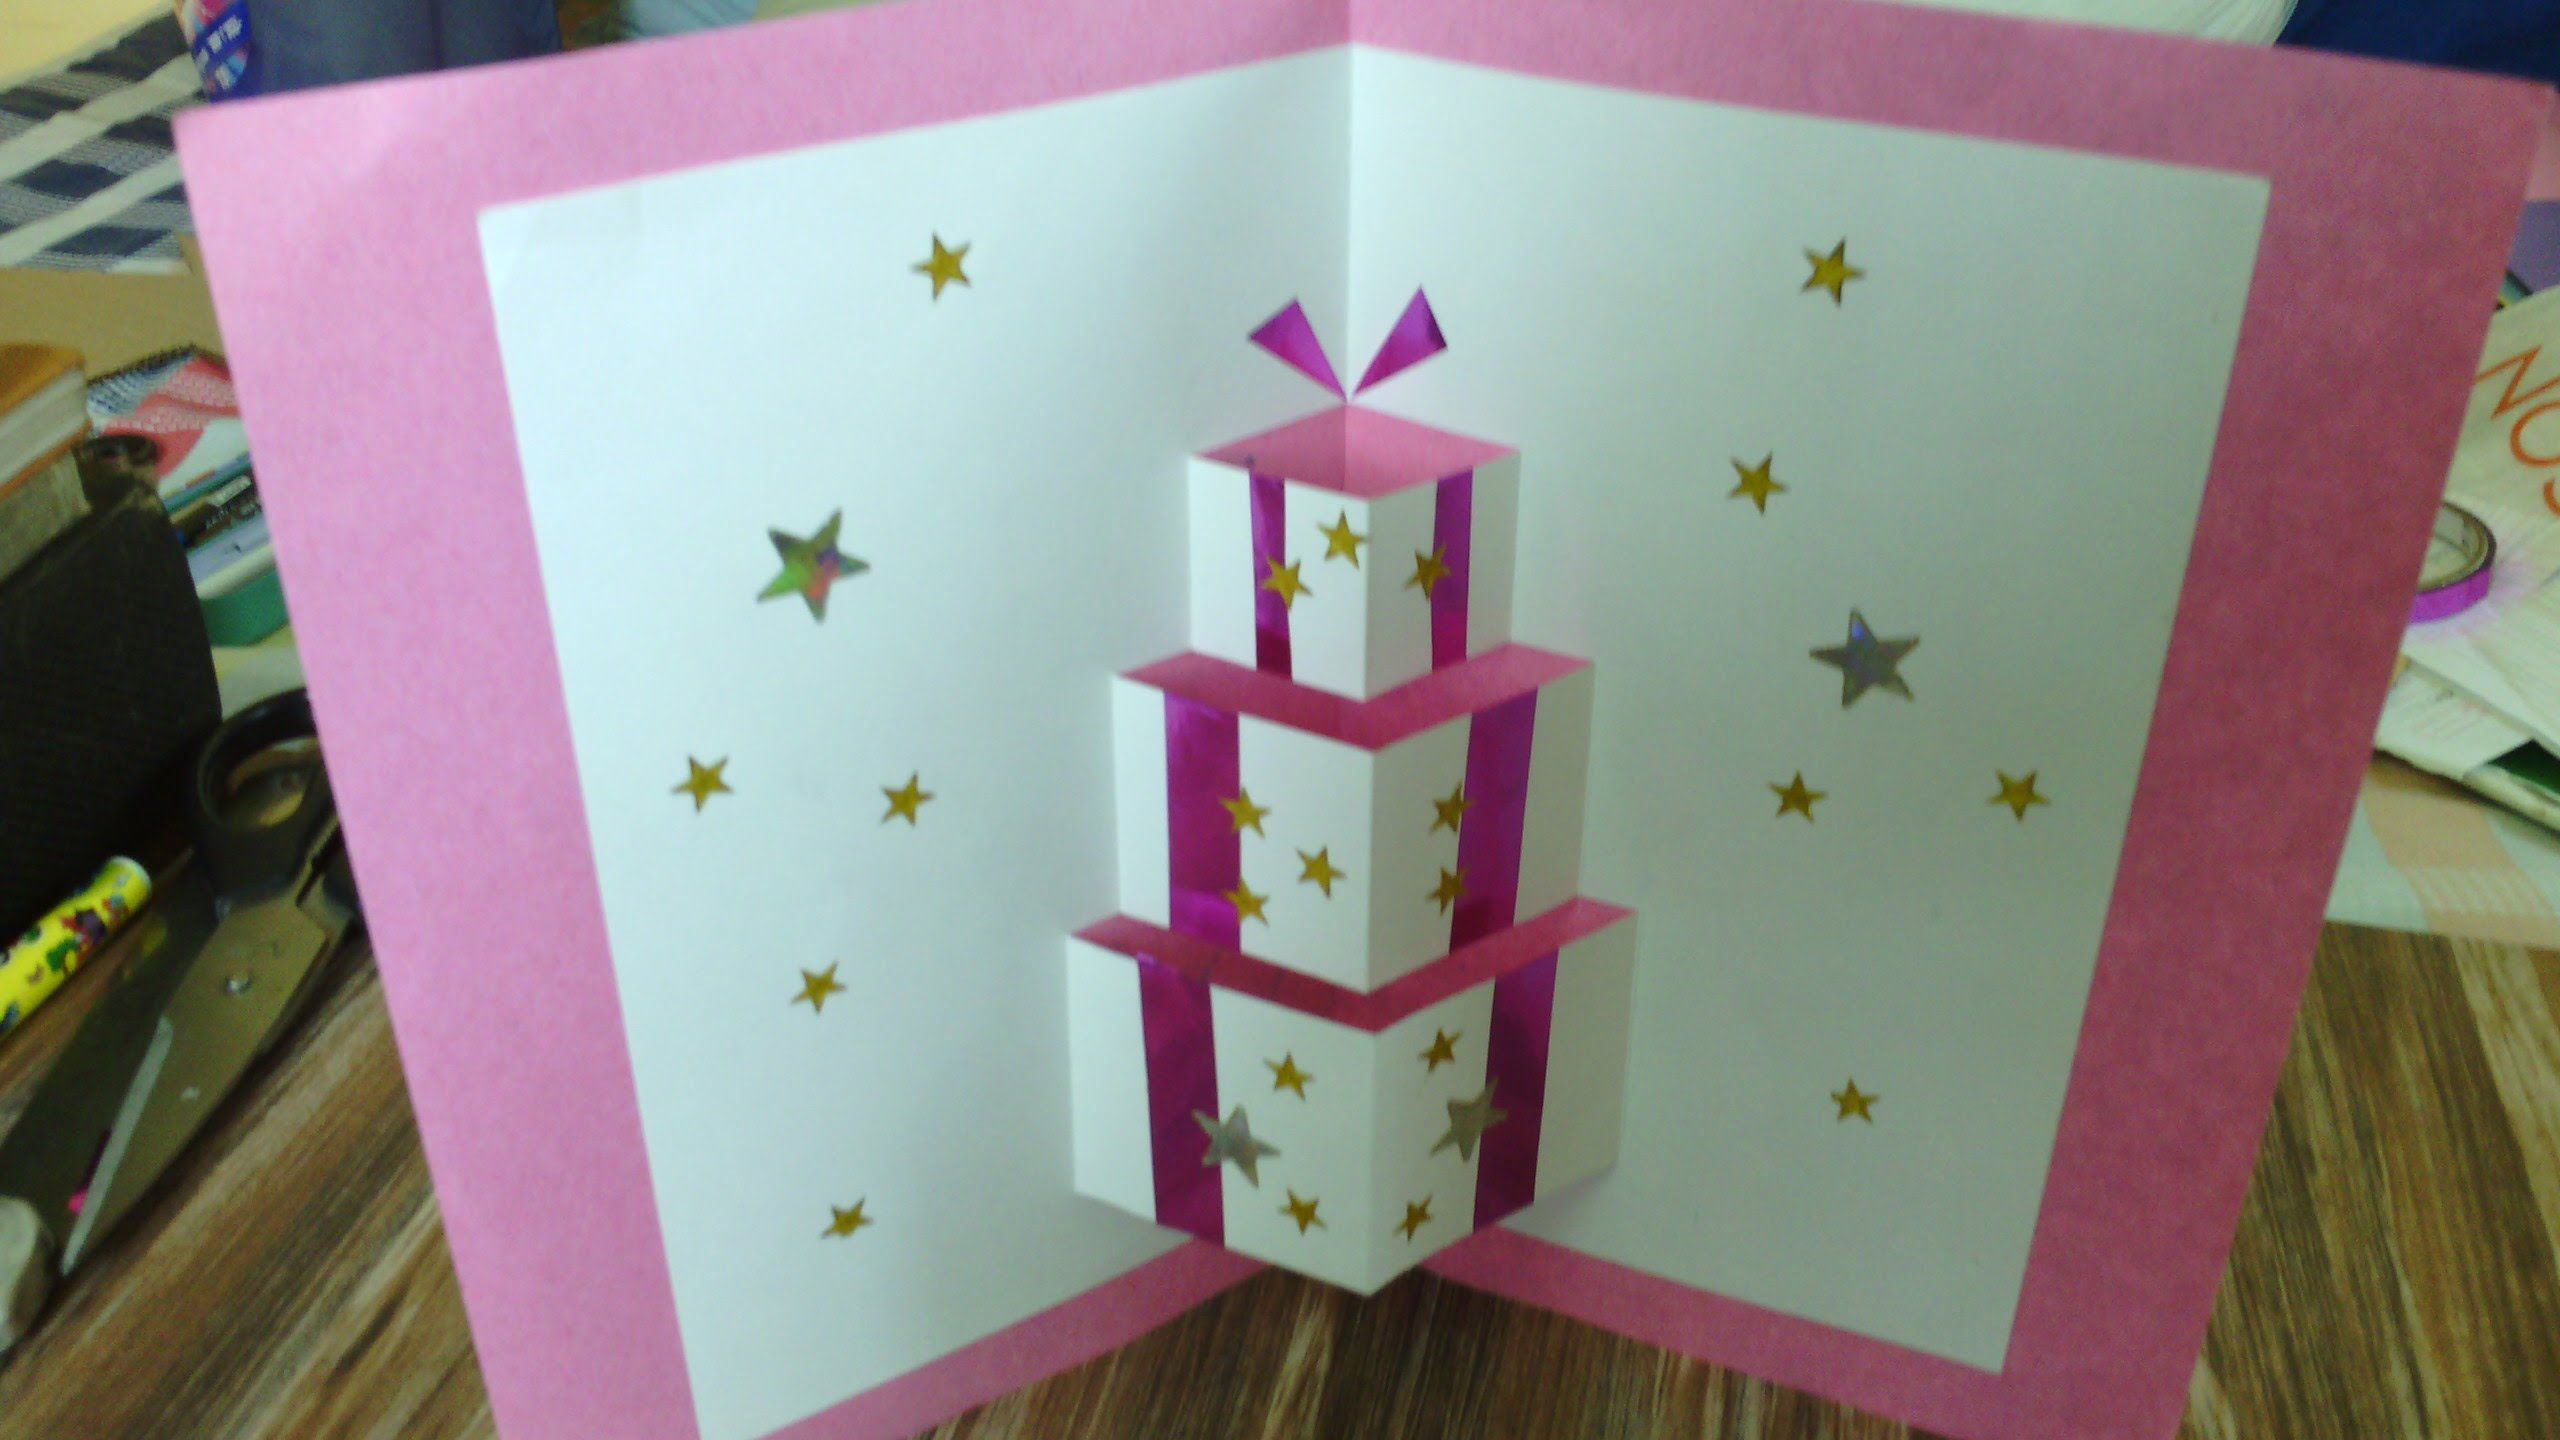 Handmade pop up card tutorial simple to make easy for beginners